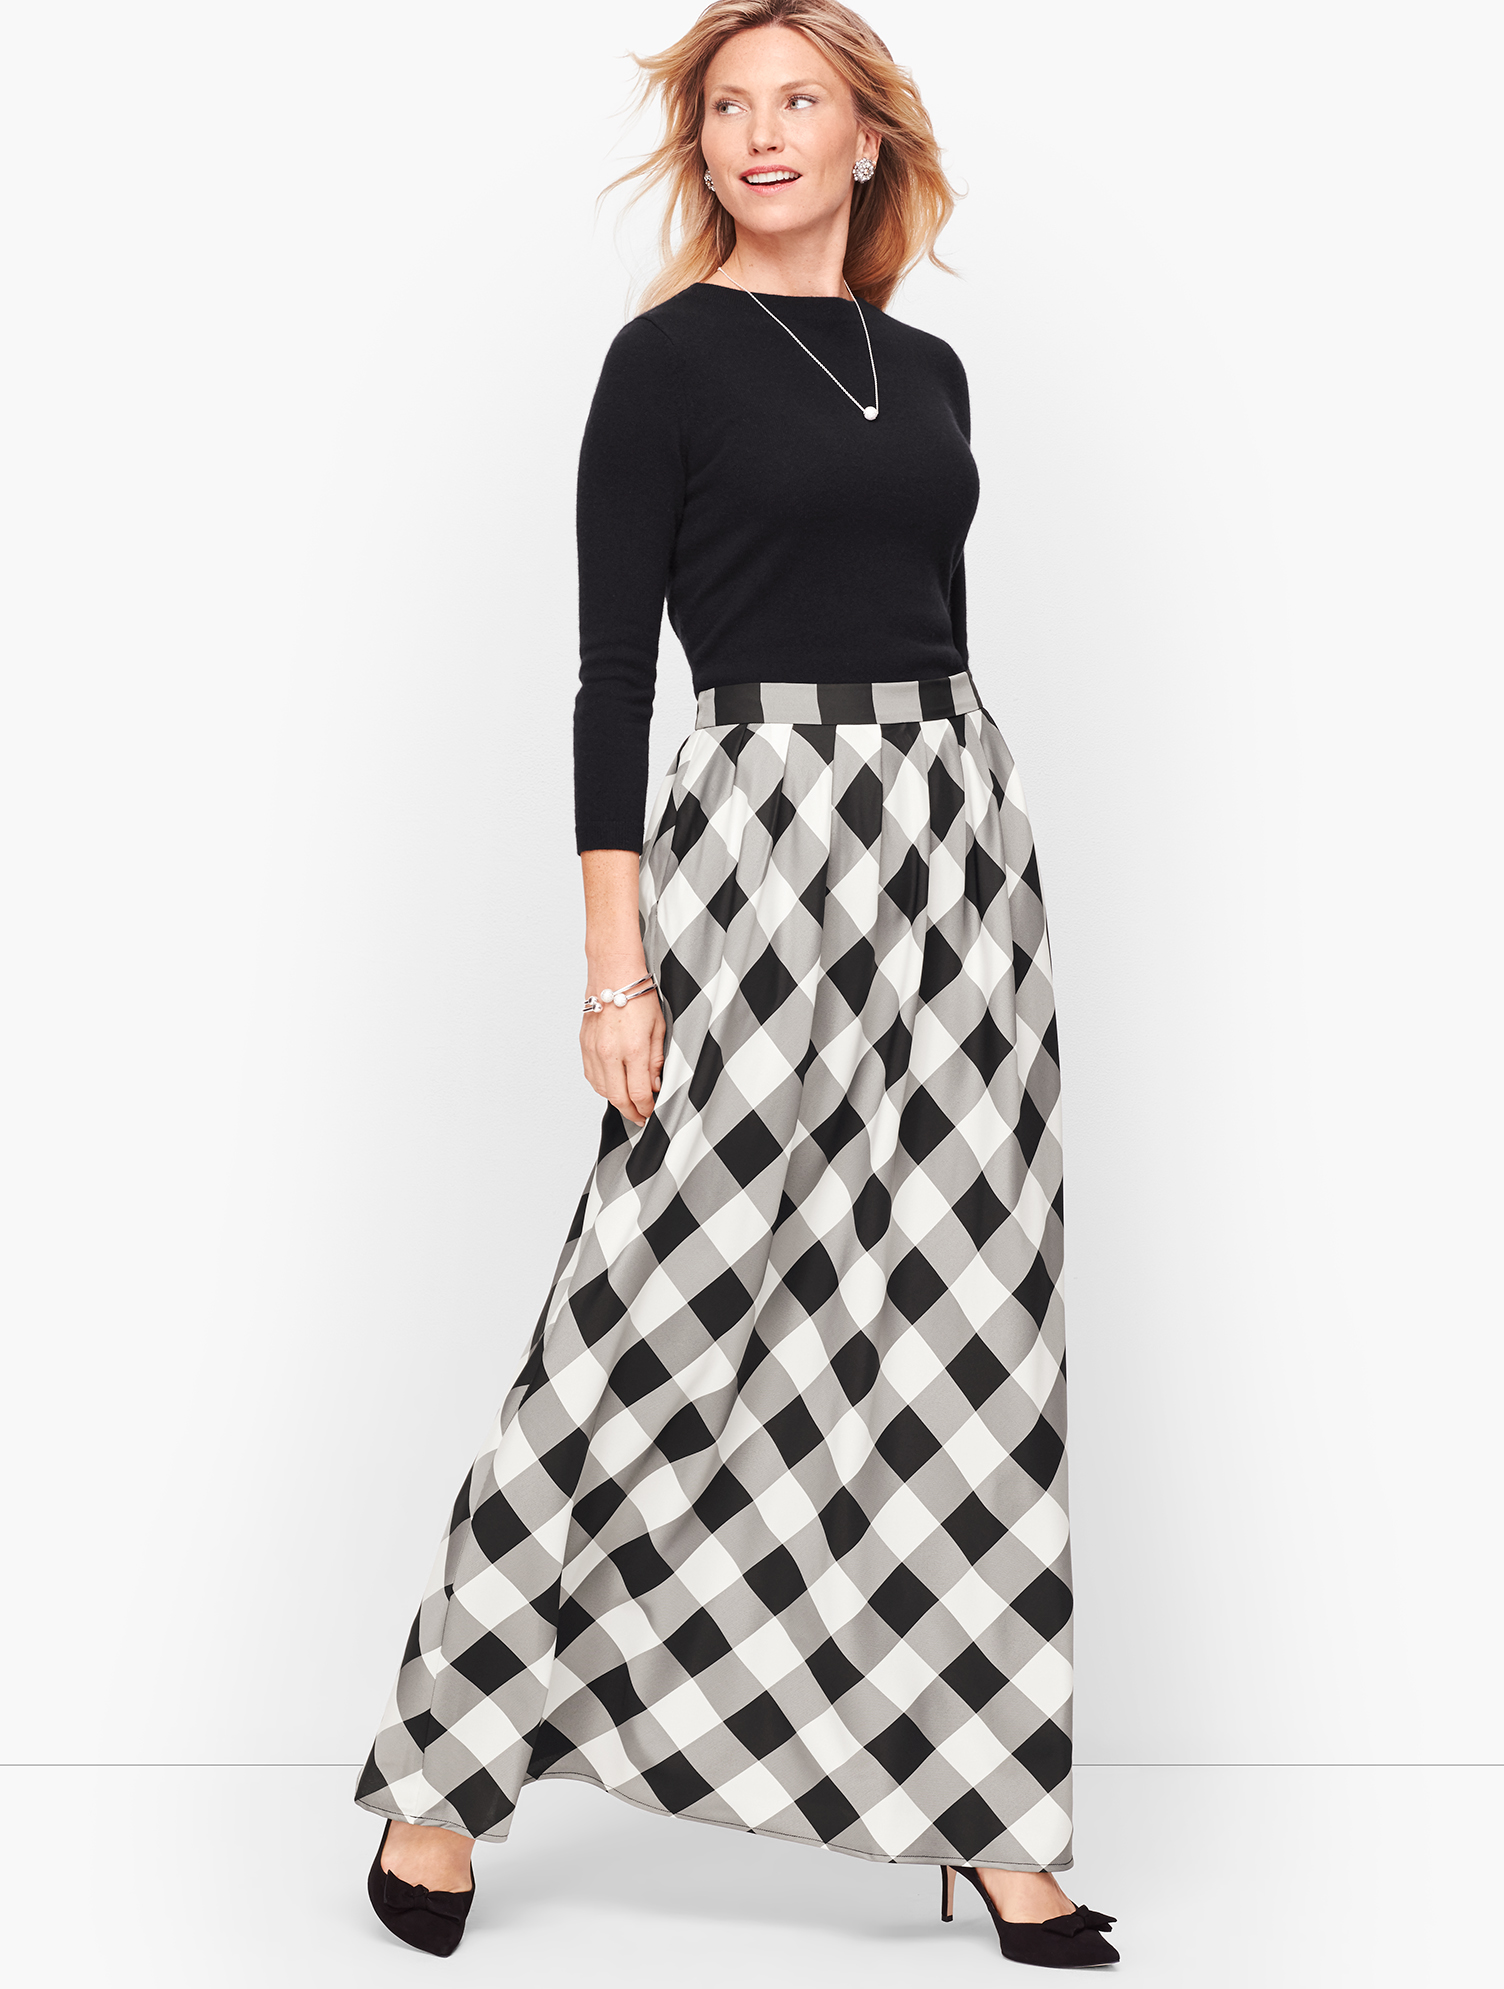 Victorian Skirts | Bustle, Walking, Edwardian Skirts Buffalo Check Pleated Maxi Skirt - BlackIvory - 16 Talbots $77.99 AT vintagedancer.com